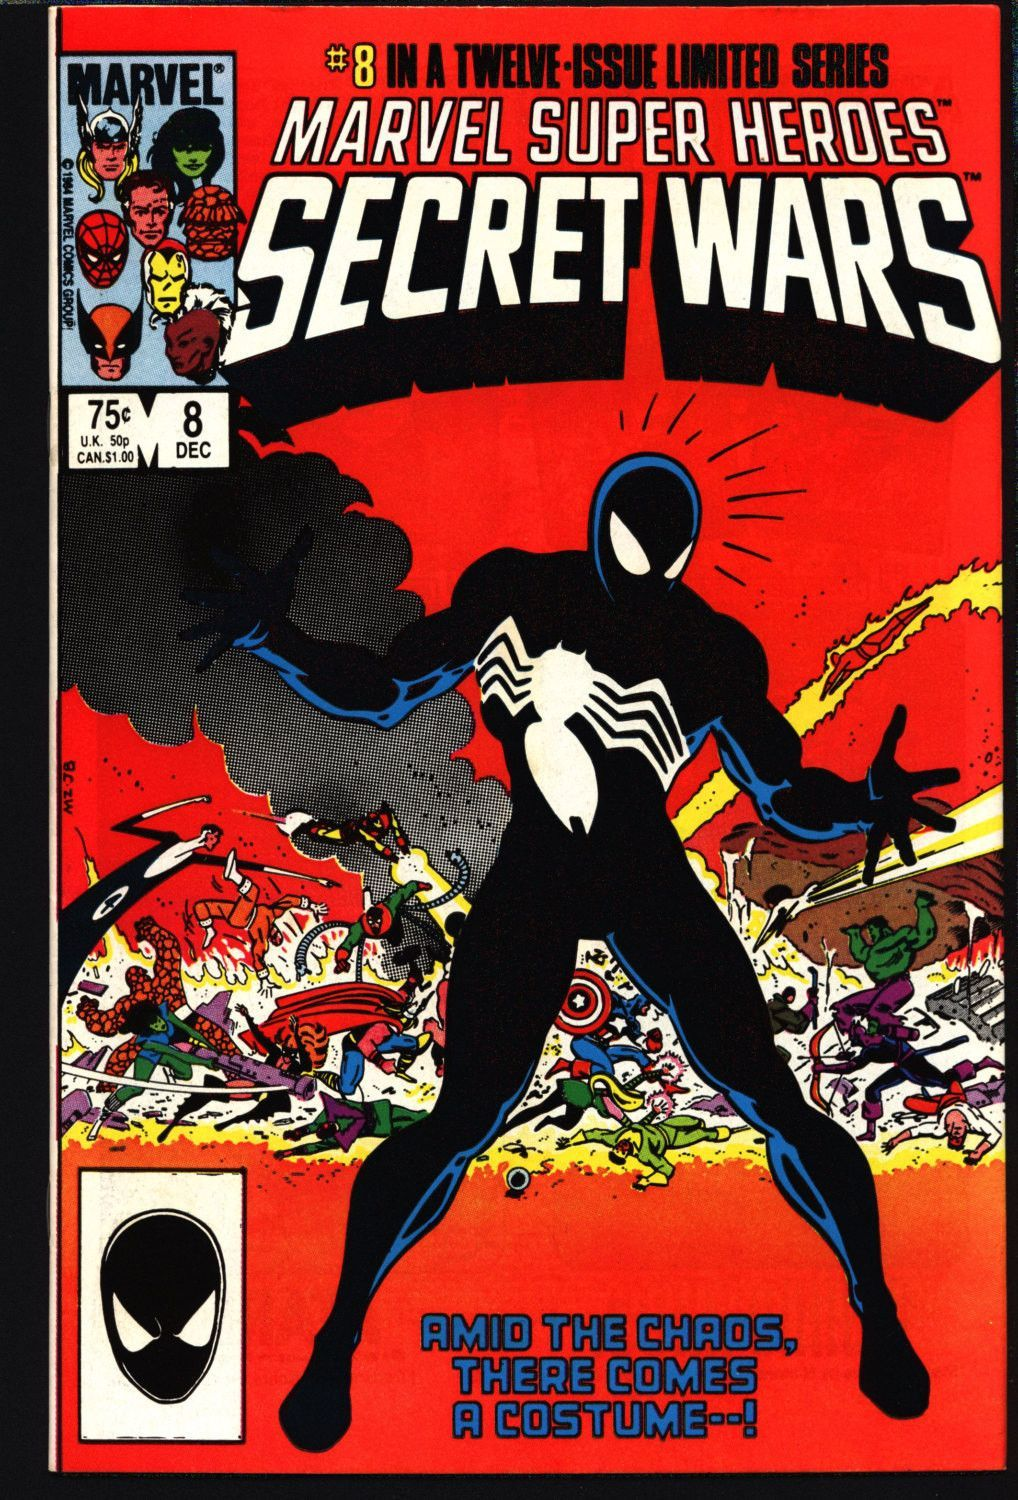 Venom Marvel Super Heroes: Secret Wars #8